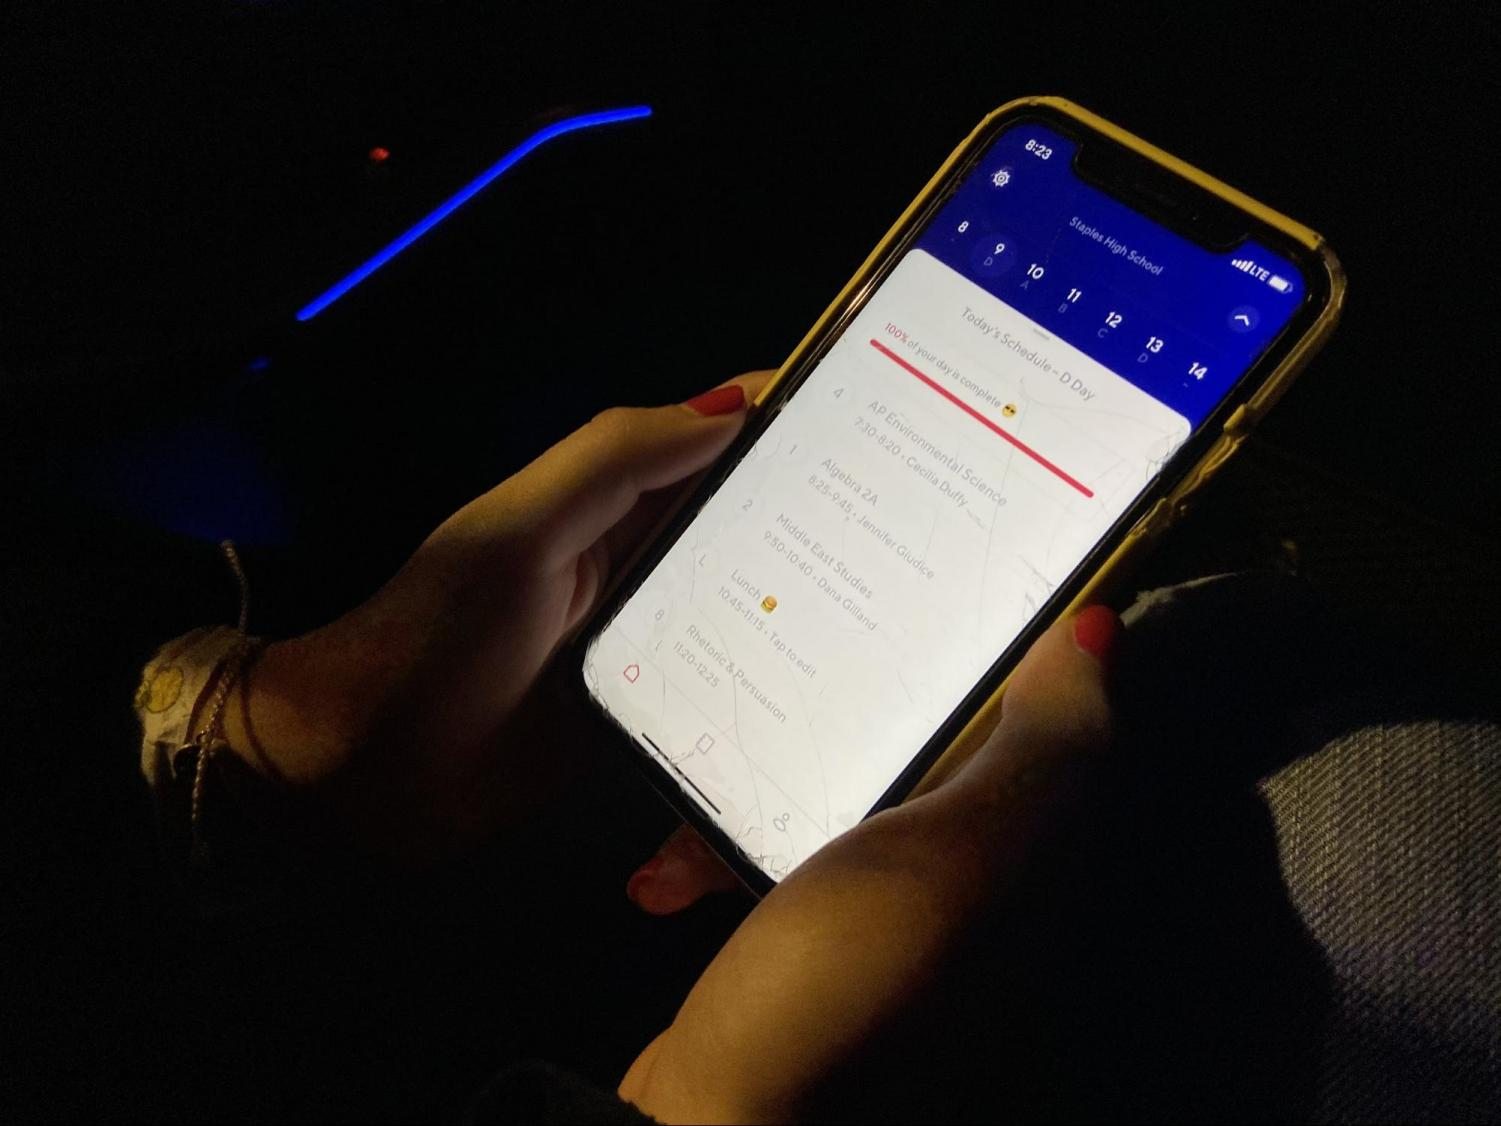 """On Dec. 3, Rishab Mandayam '21 posted a """"surprise"""" for Staples Superfans when they opened the iStaples app. Now, students are being directed to Saturn, an app for daily schedules."""